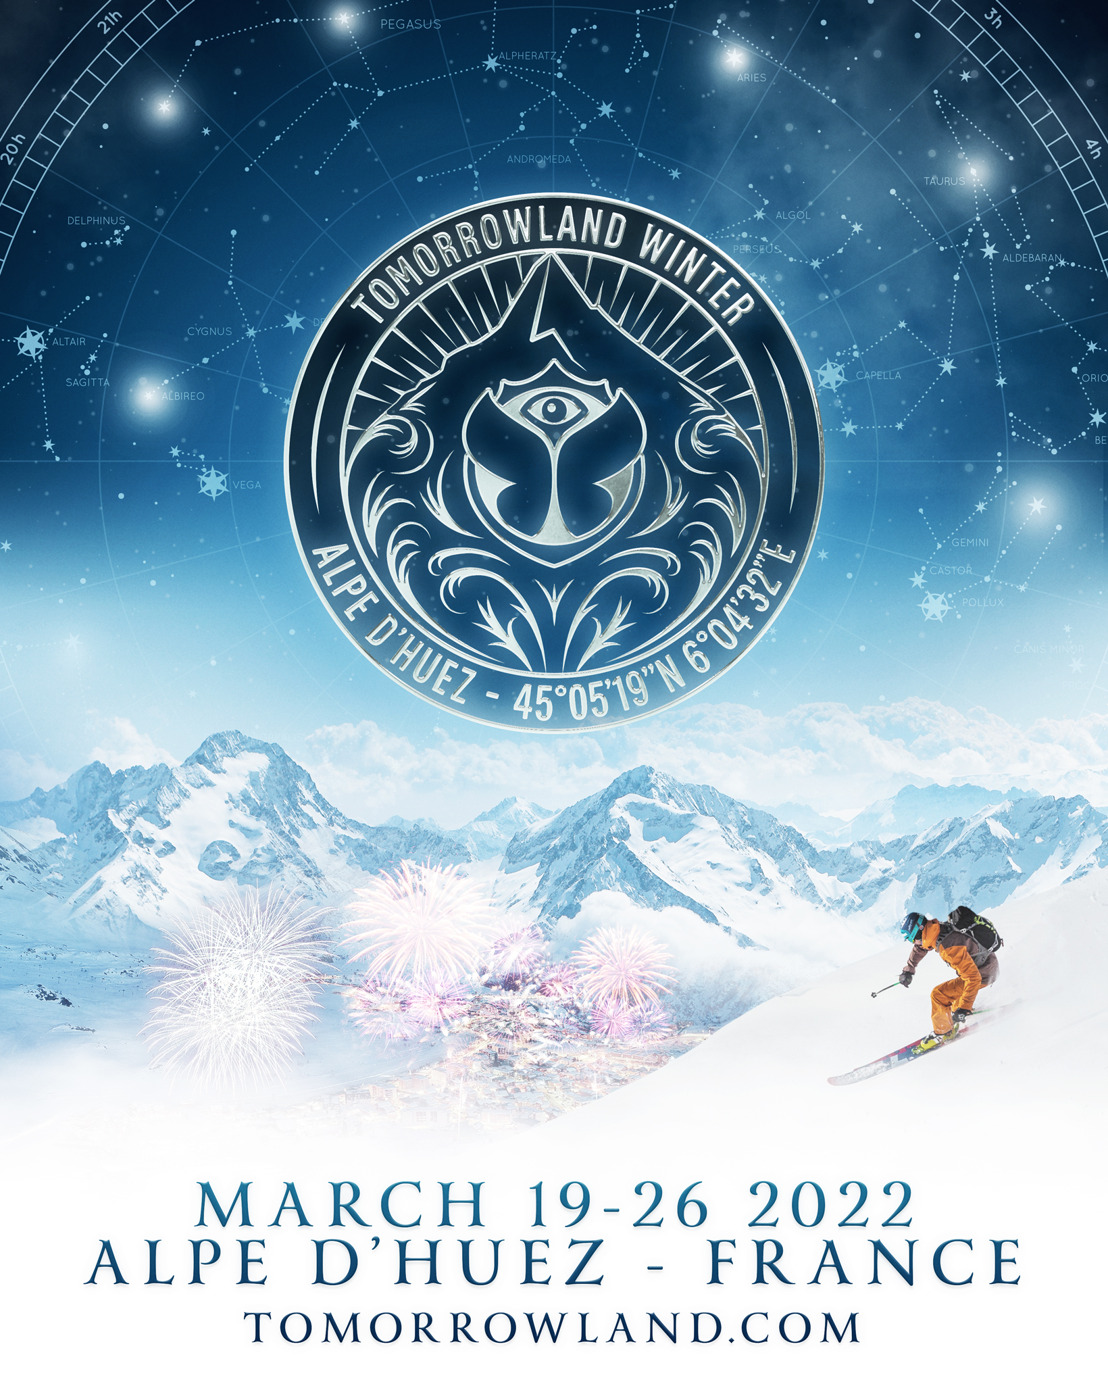 Start planning your ultimate winter sports festival experience at Tomorrowland Winter 2022